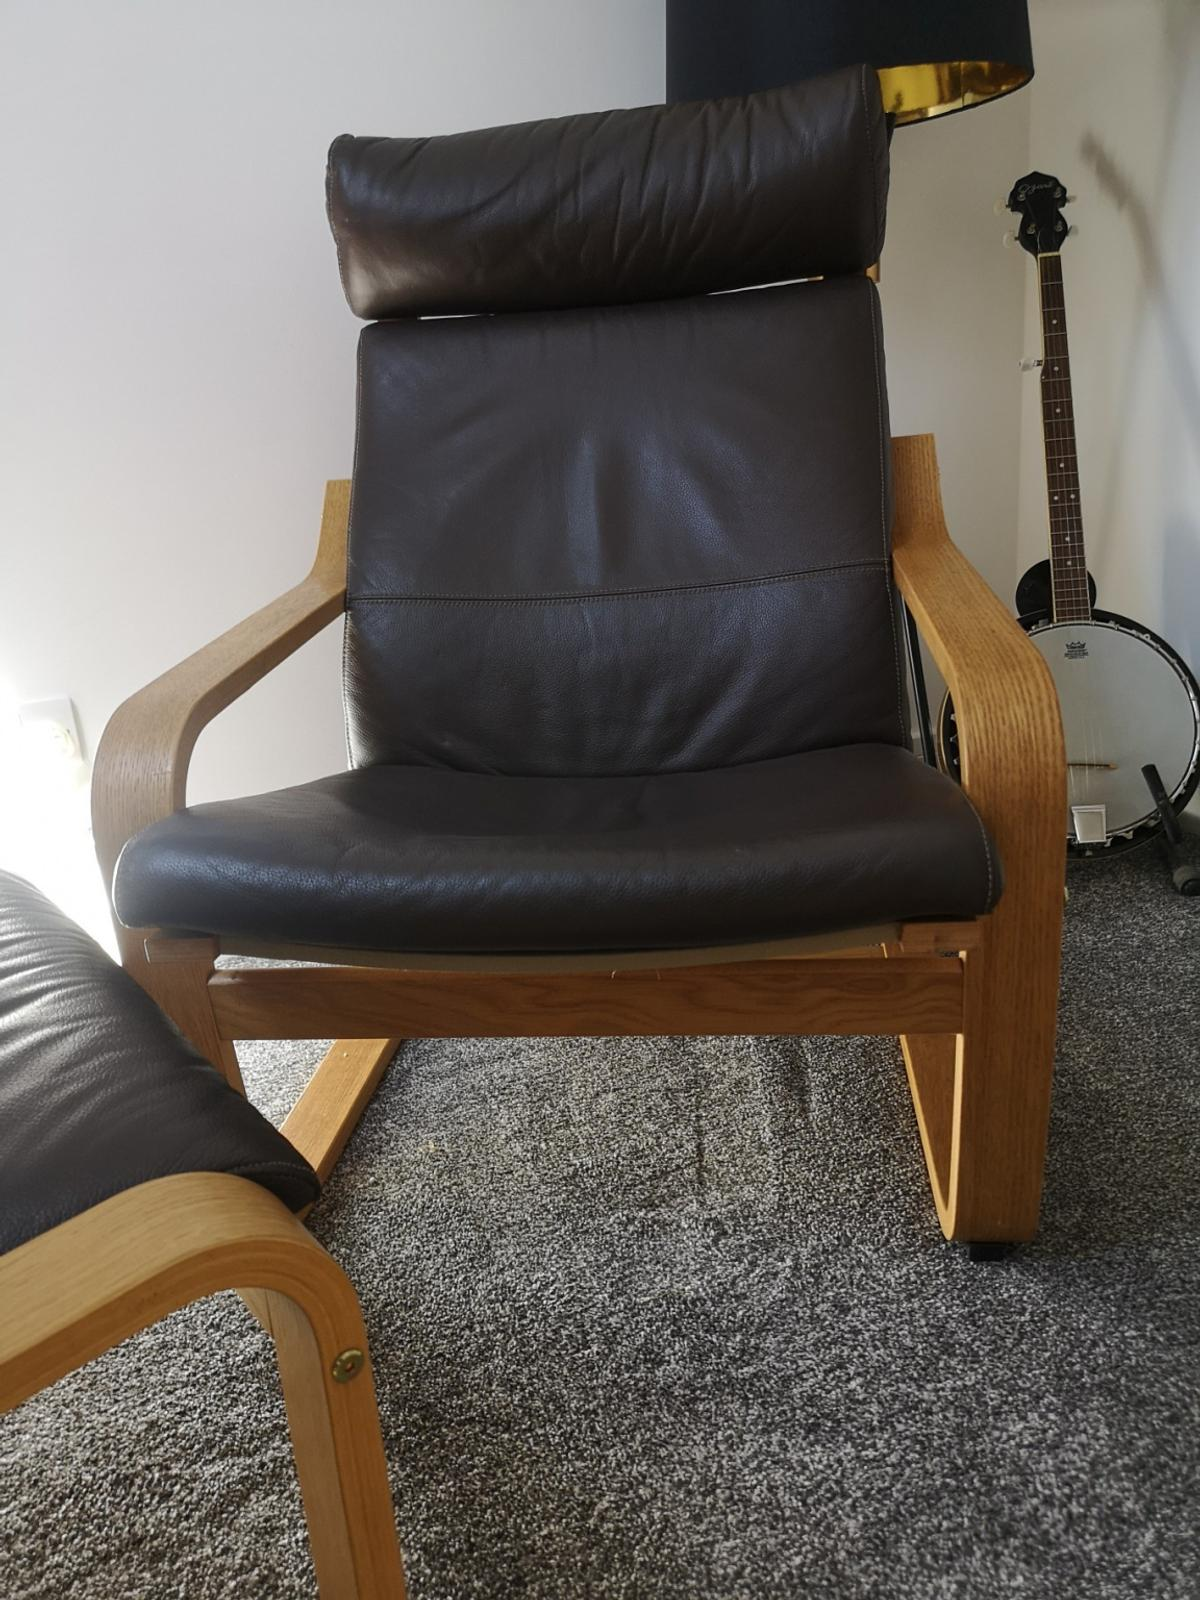 Brown leather poang chair from IKEA in very good clean condition. Extremely comfortable. Will dismantle for easy collection if needed.